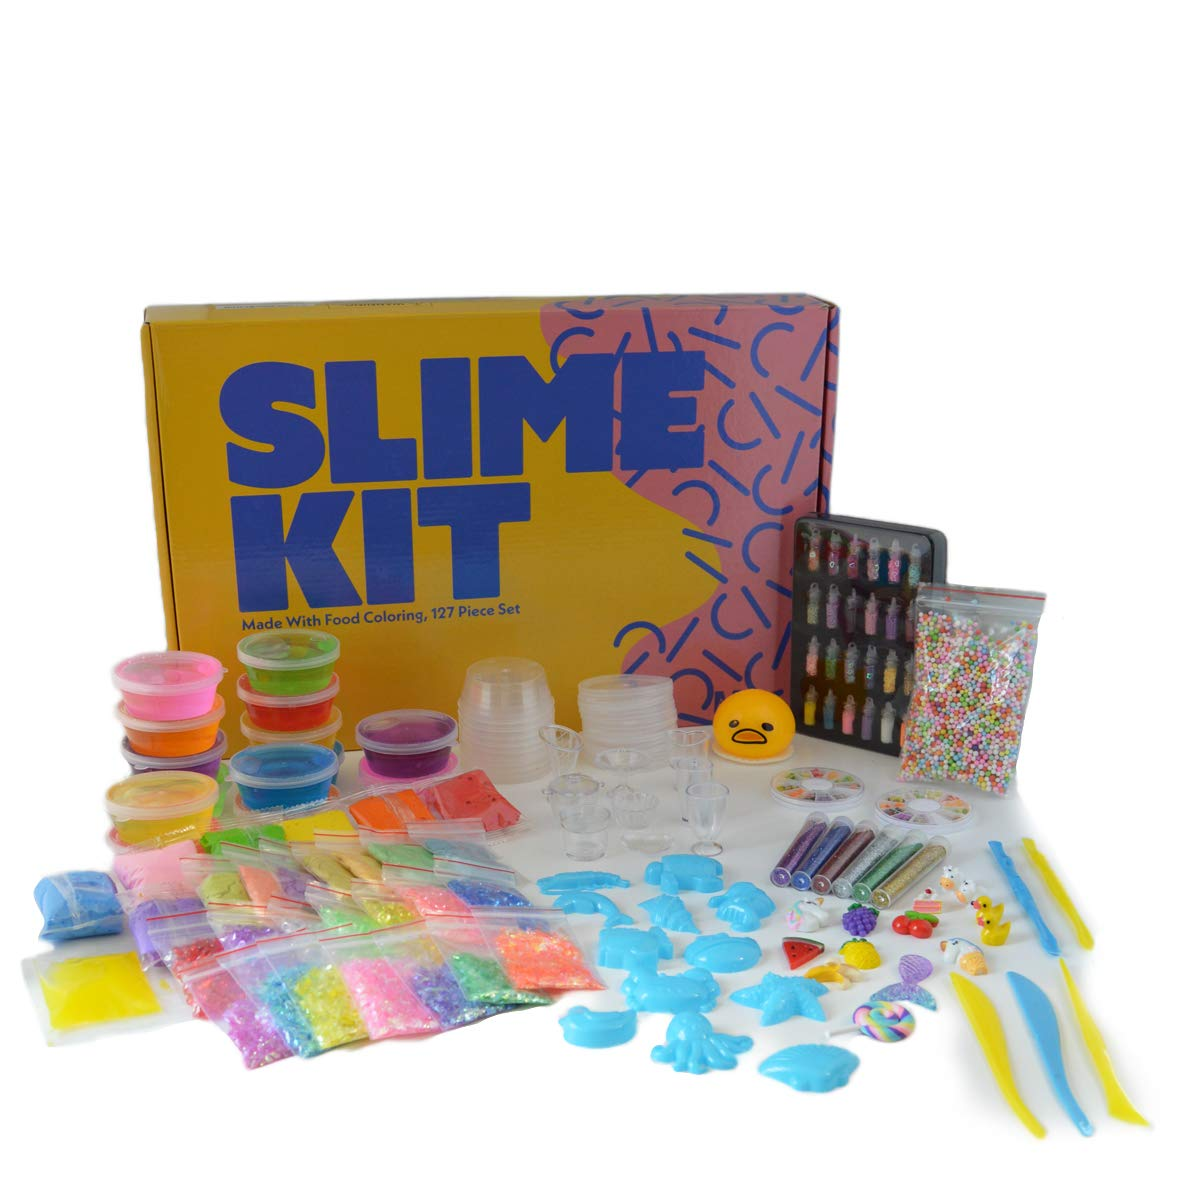 Ultimate DIY Slime Kit|Water Resistant mats|Kinetic Sand|ASMR|Charms|Beads|Emoji Toy|Mermaid Tail|Unicorn|Accessories|Made with Food Coloring|Stimulates Learning Through Touch Sound Sight|127 Pcs